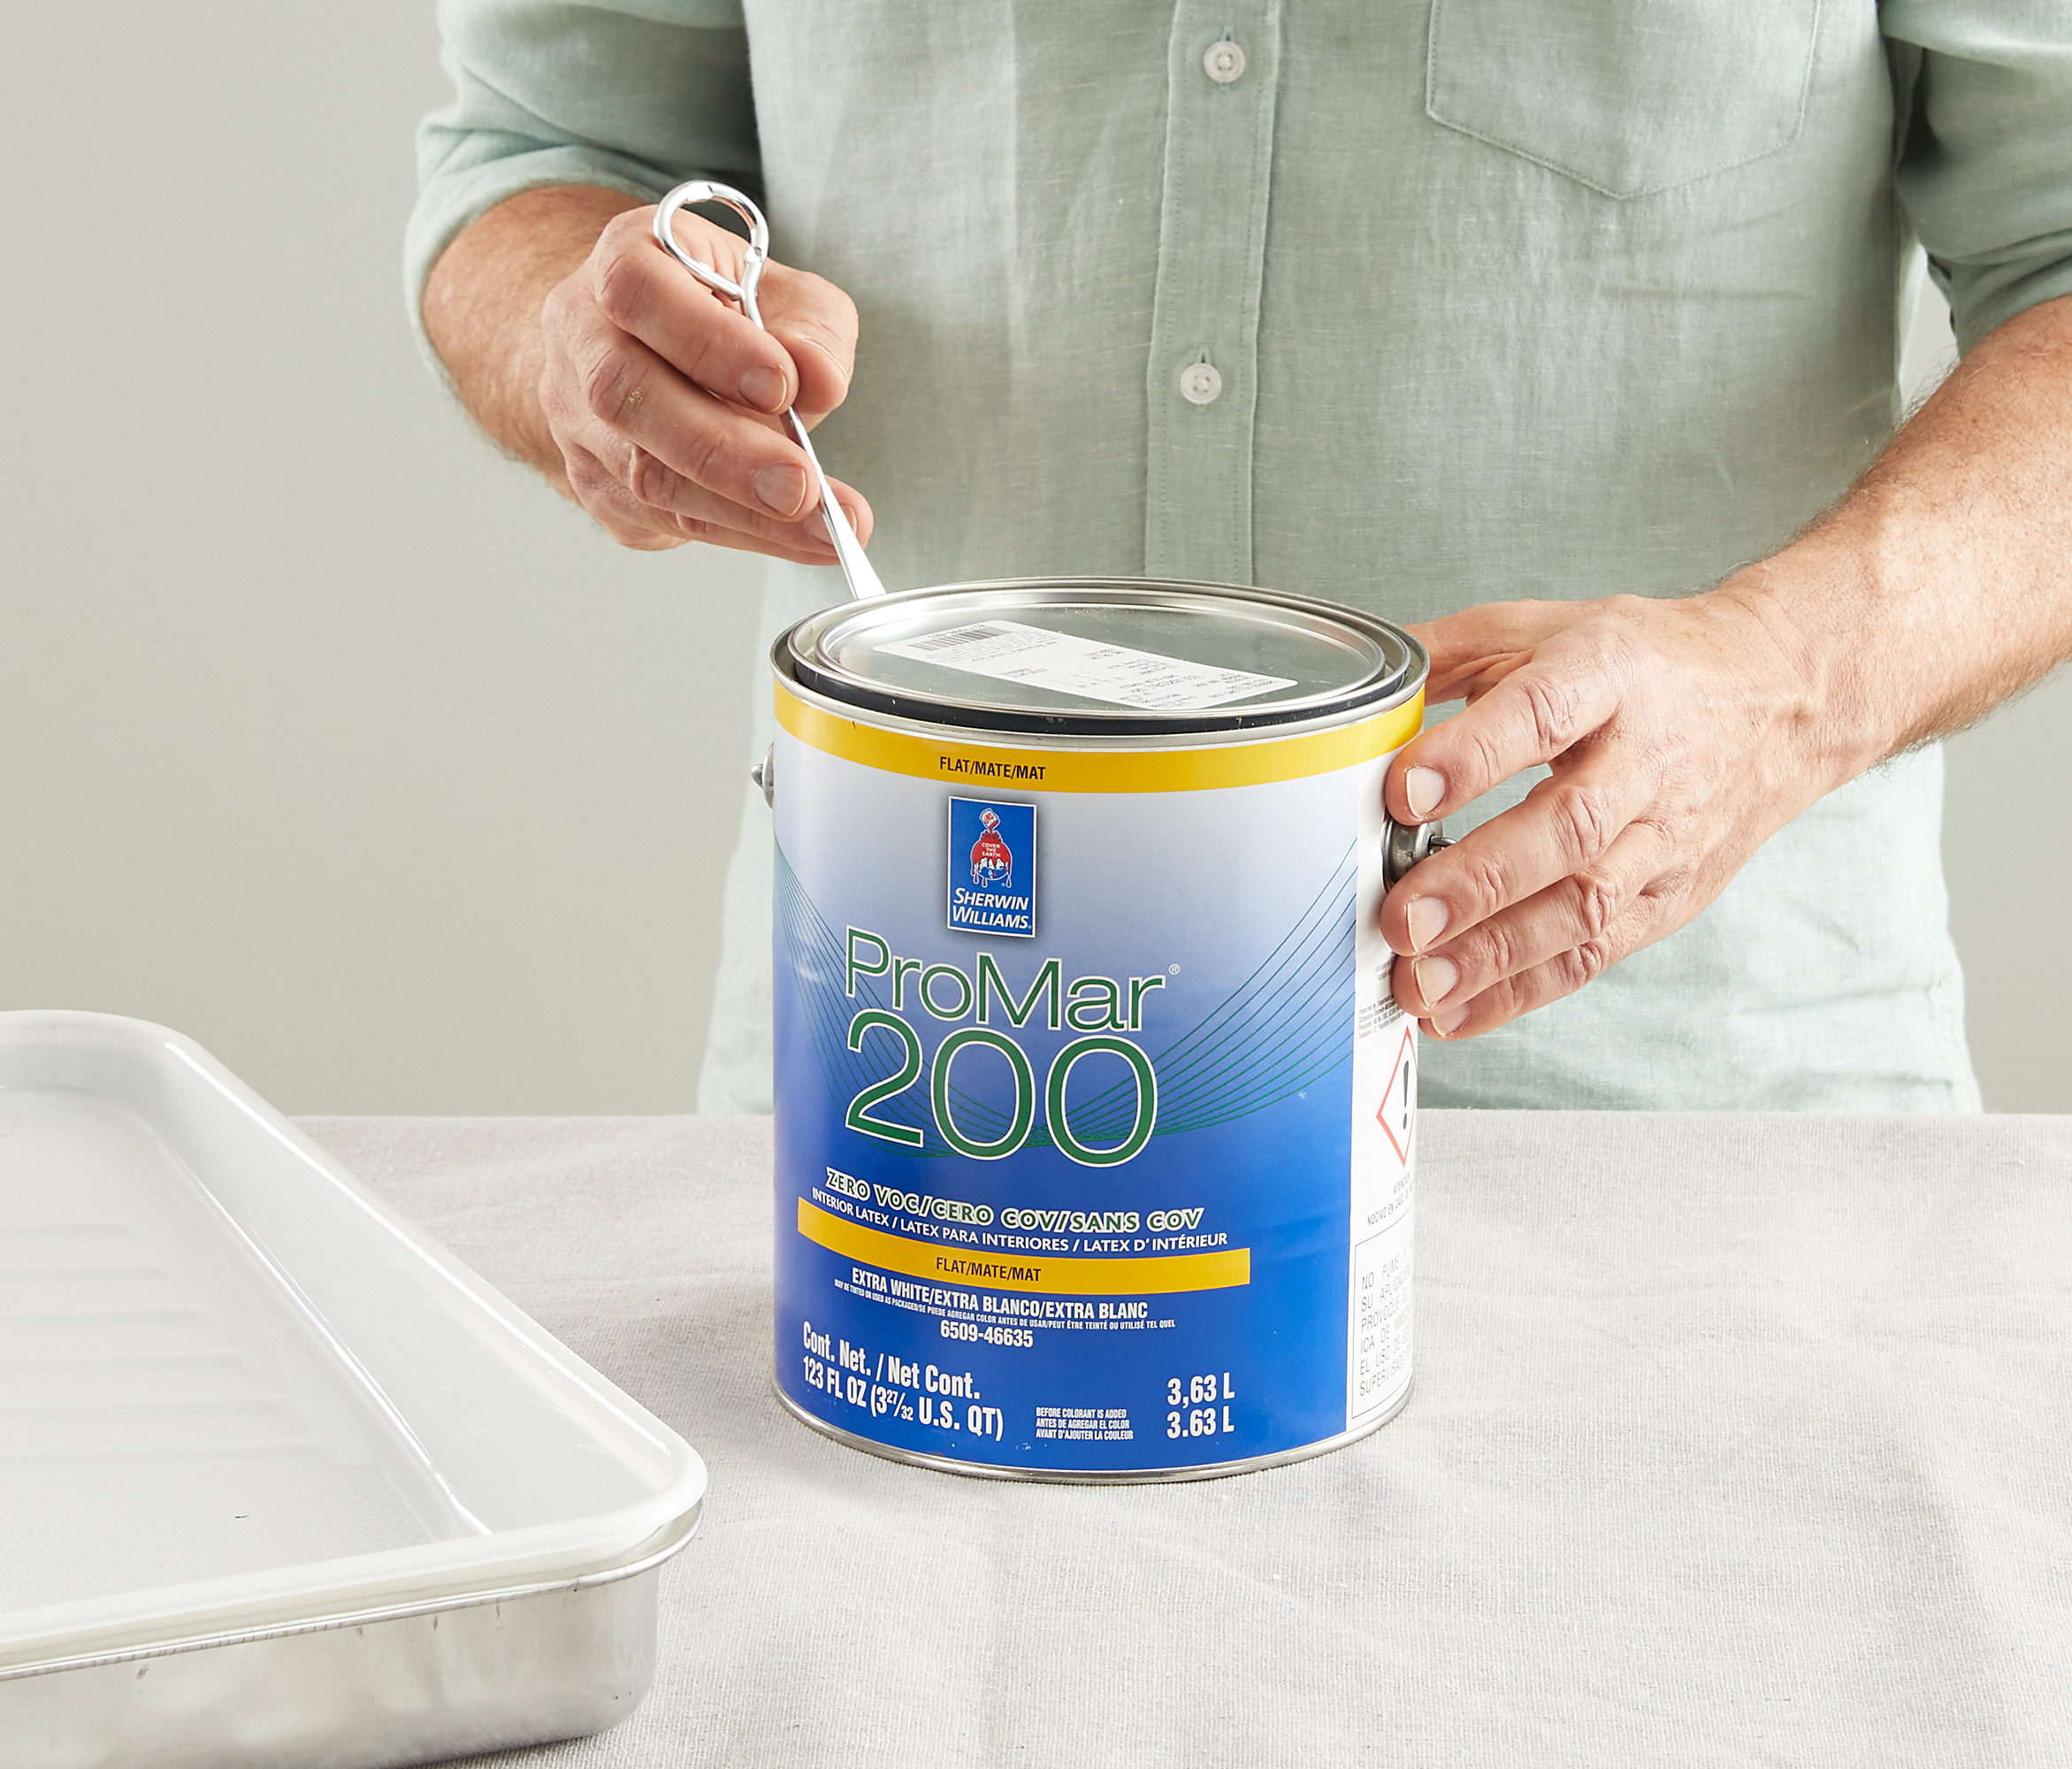 loosening paint can lid with tool